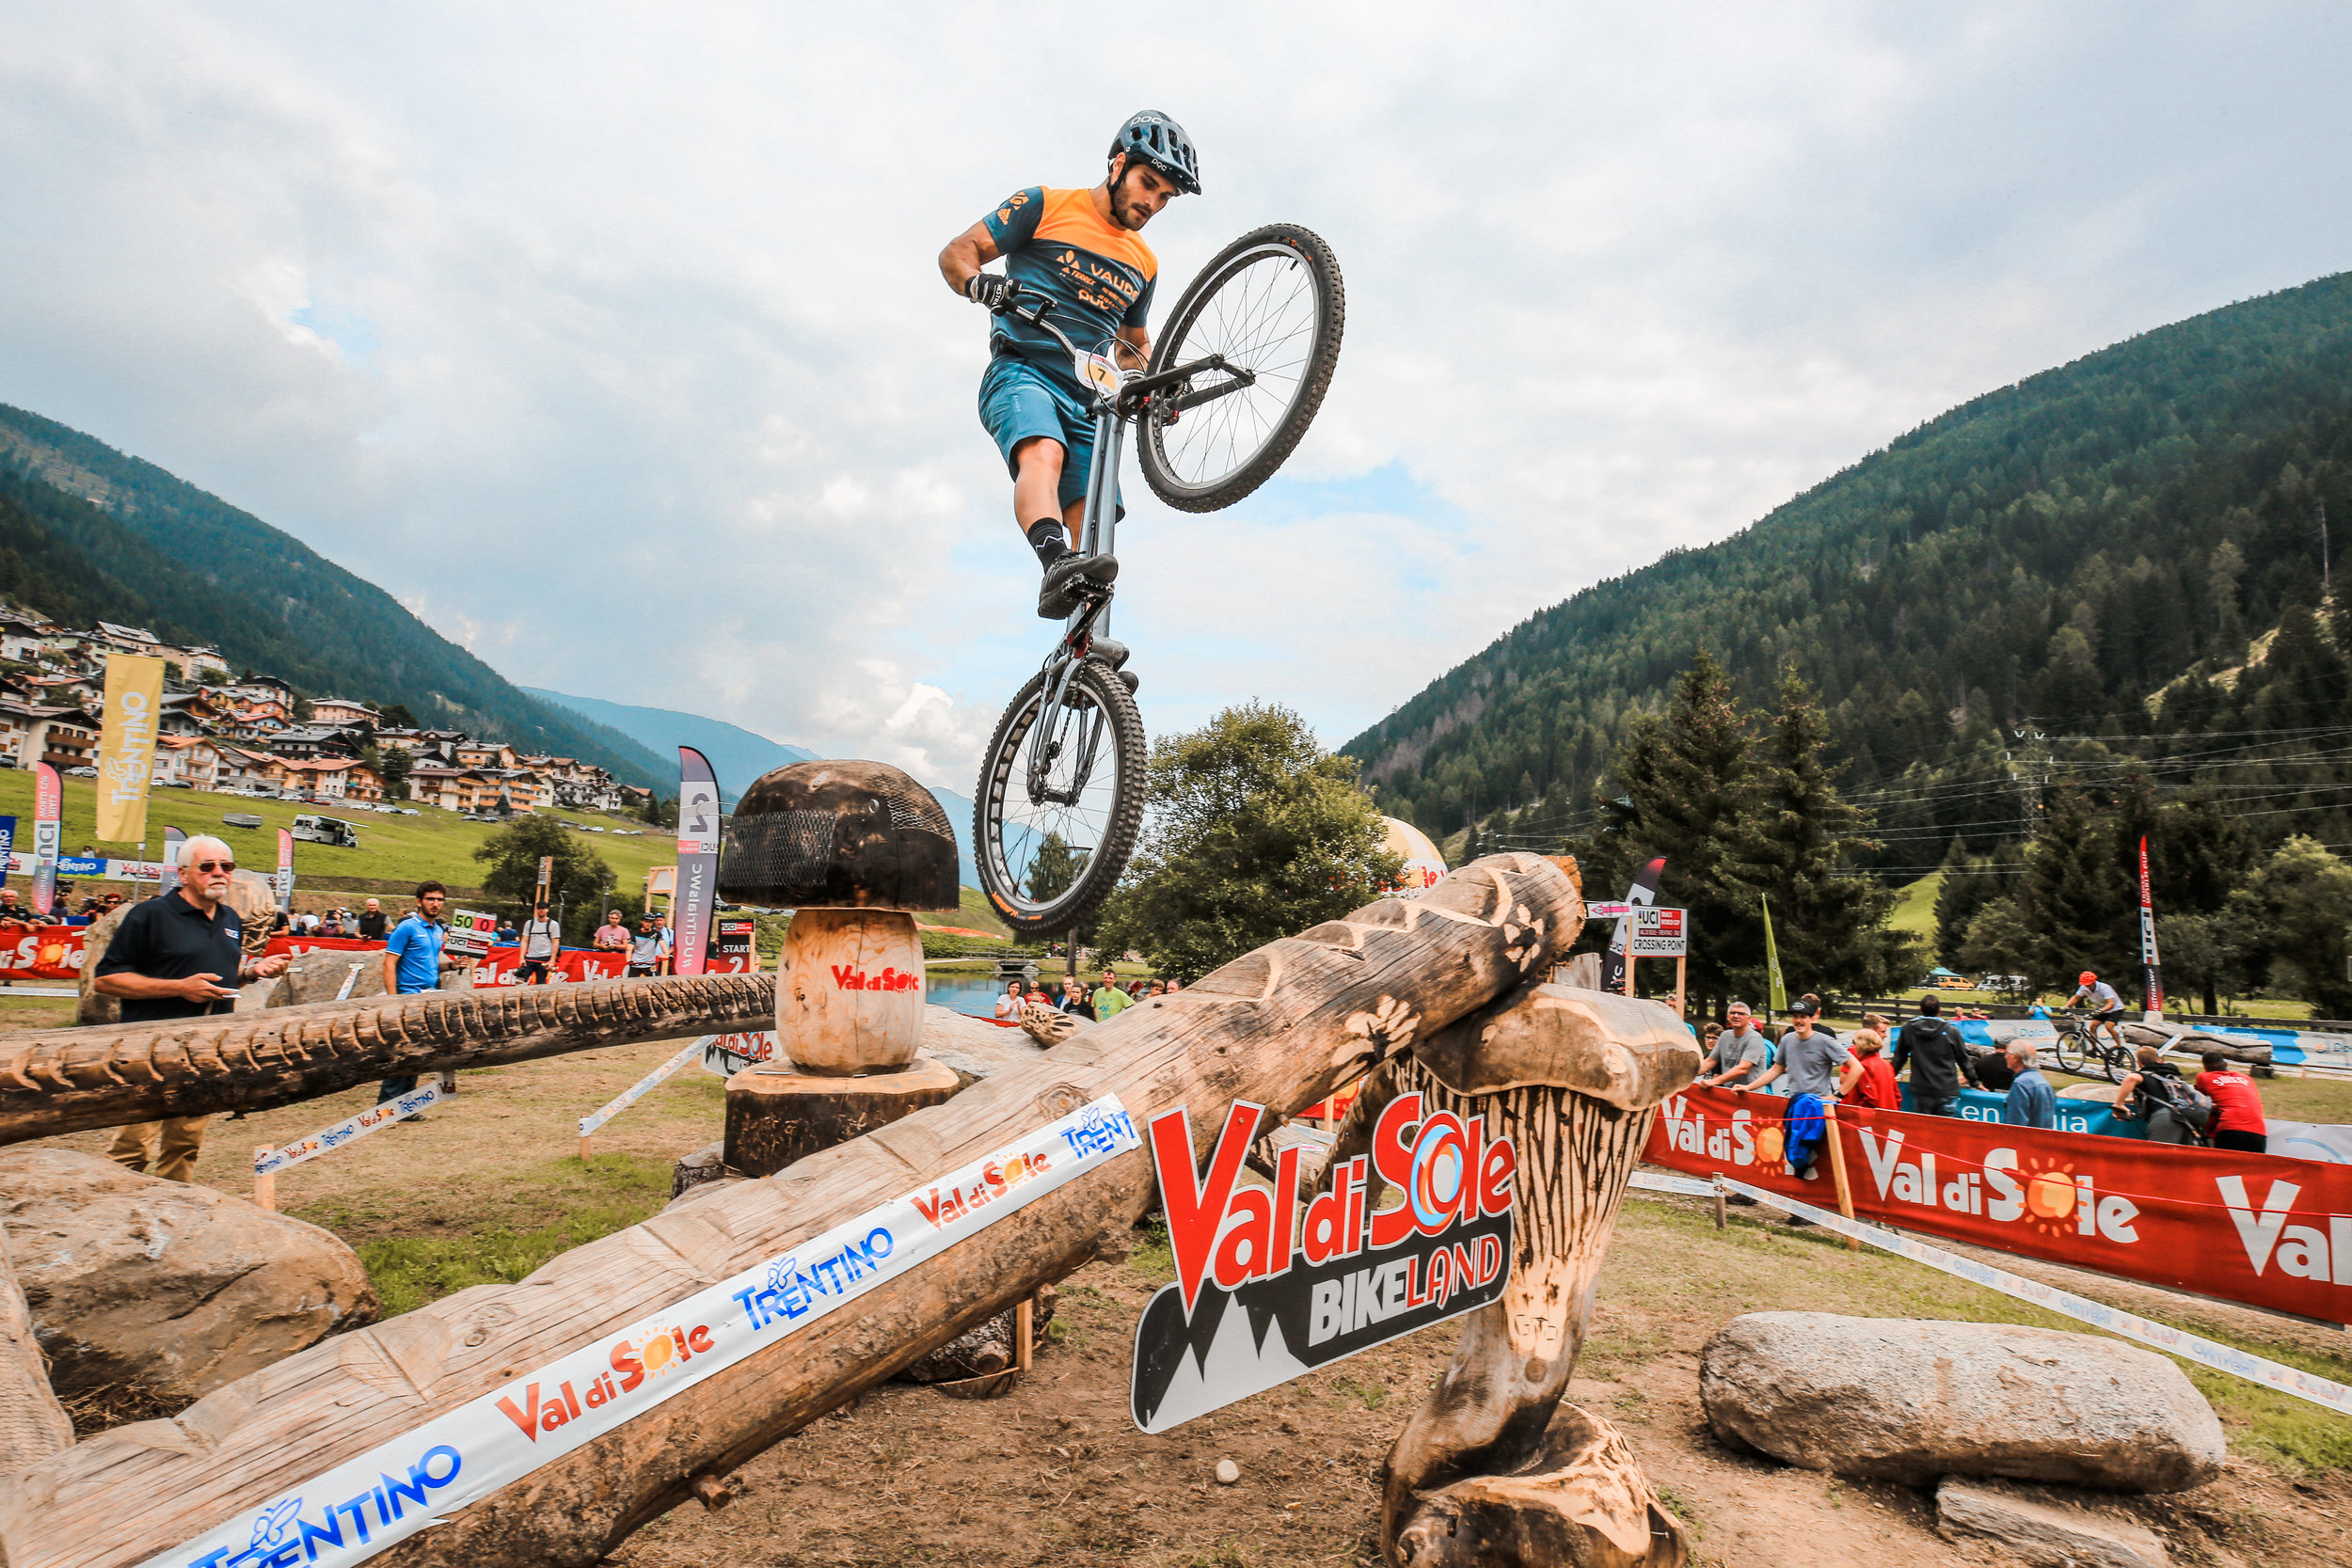 pol_tarres_blog_uci_world_cup_val_di_sole_2019-02.jpg